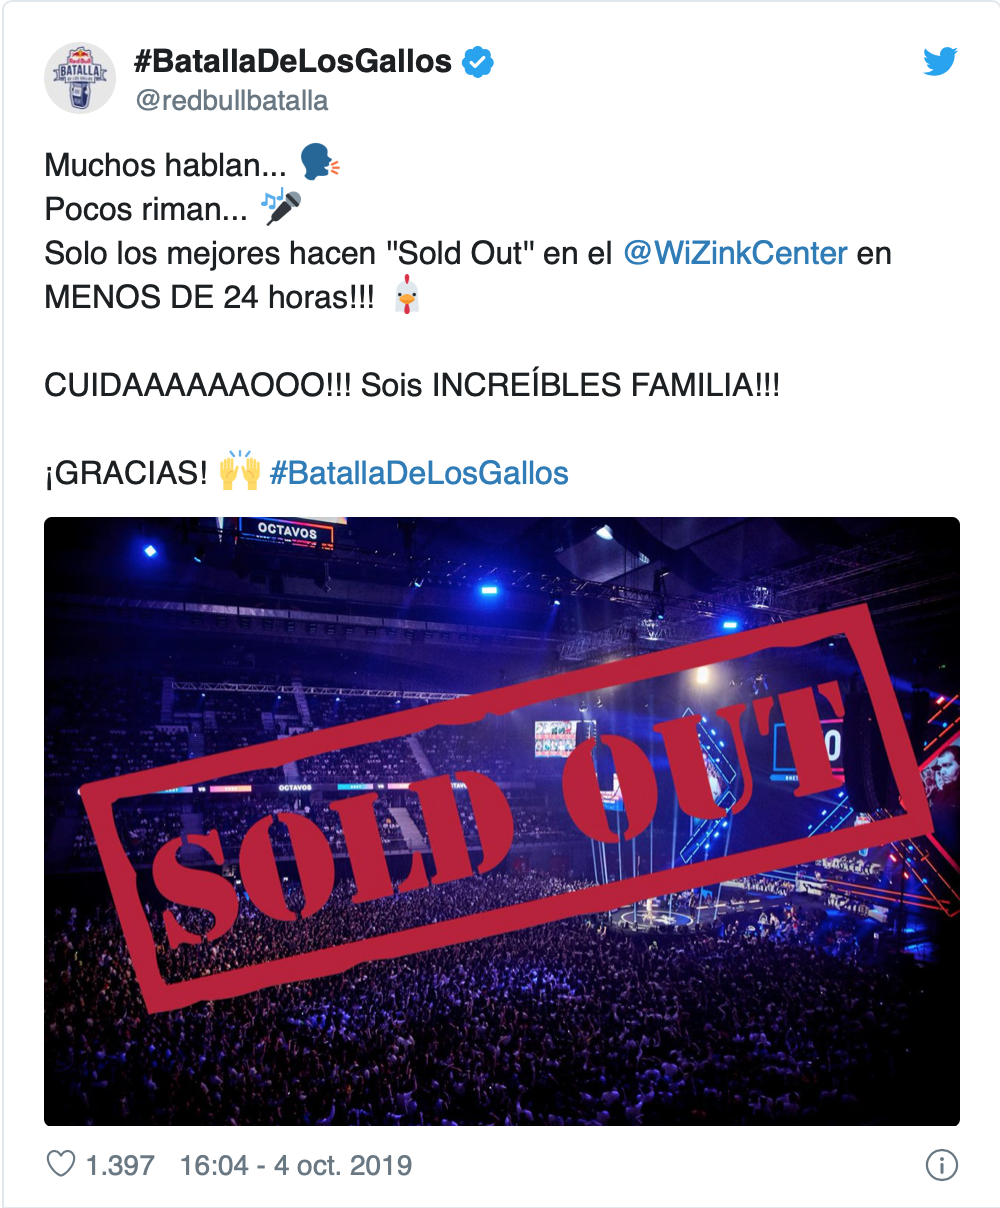 Comunicado de sold out